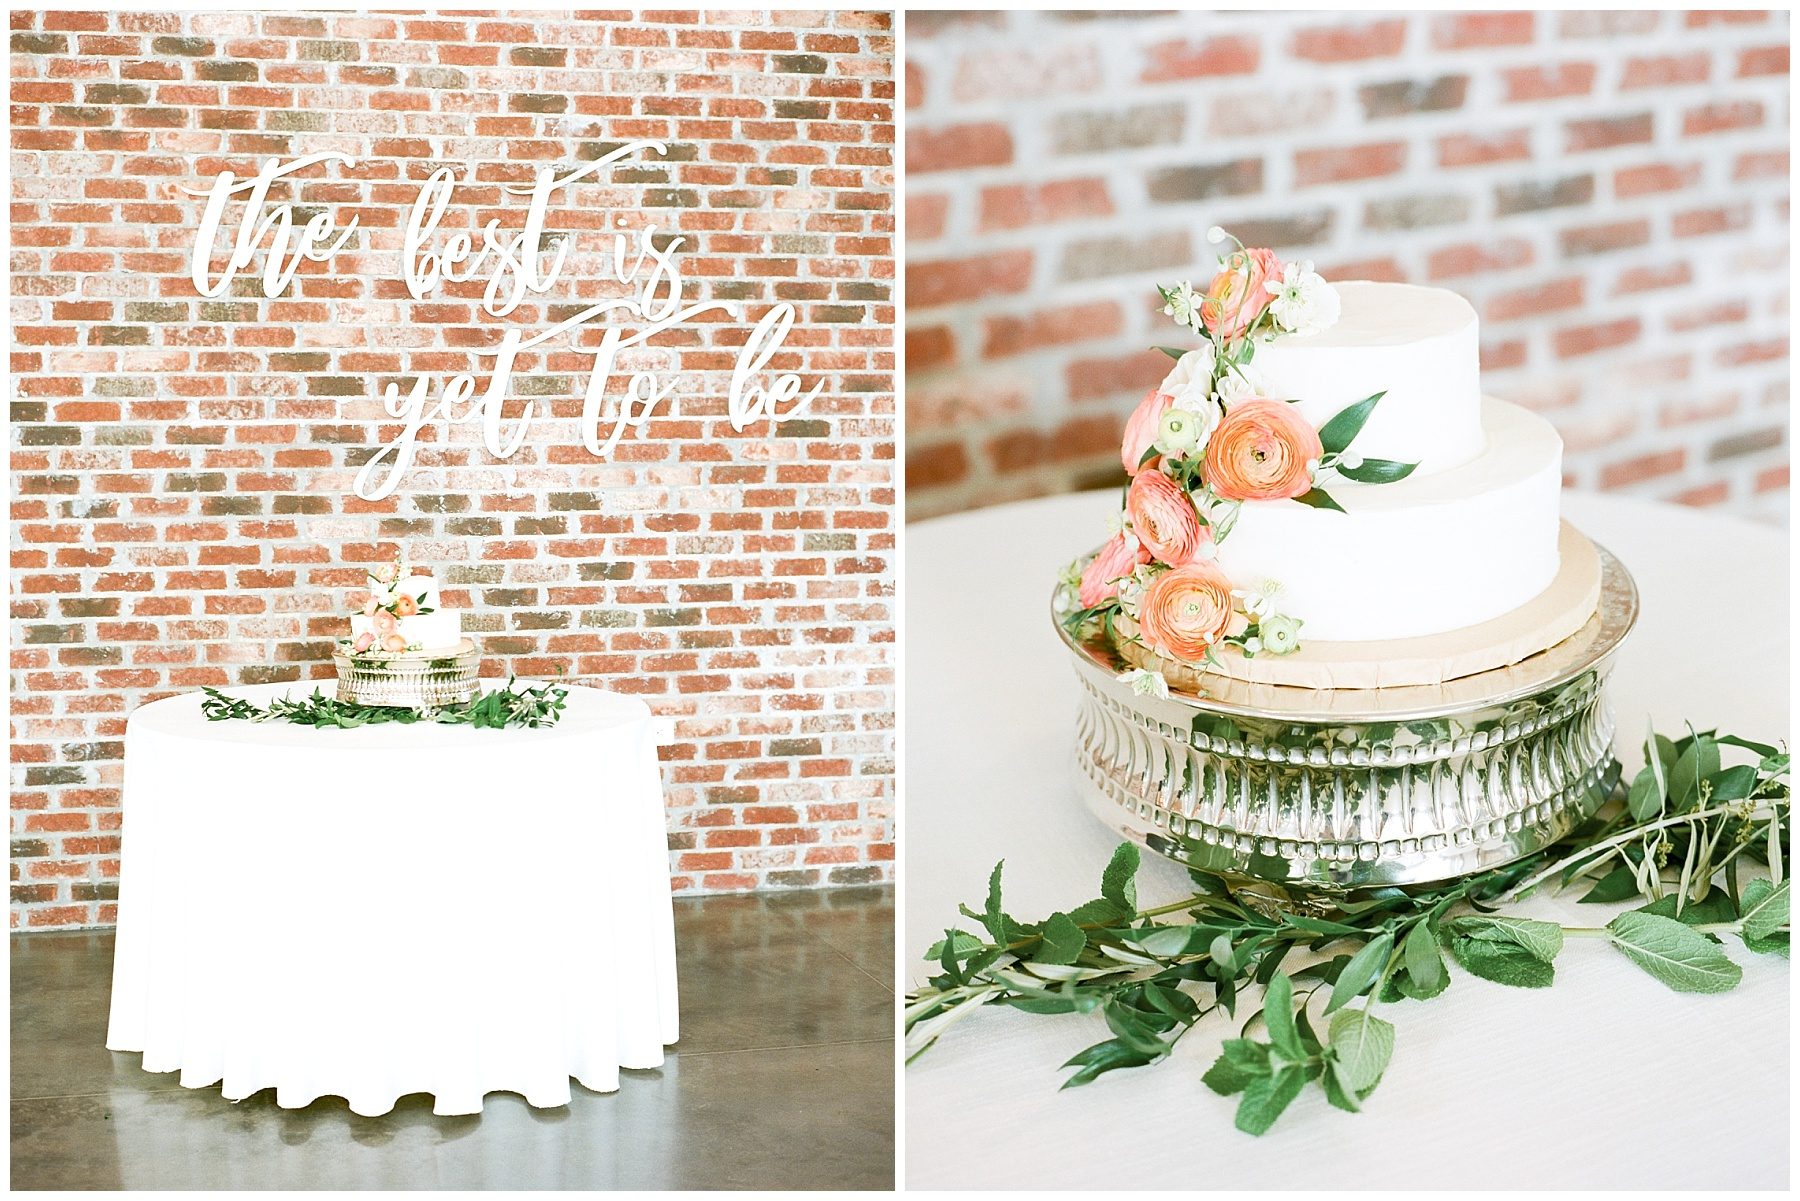 Textural Organic Wedding in All White Venue by Kelsi Kliethermes Wedding Photographer - Missouri, Midwest, and Destinations_0117.jpg